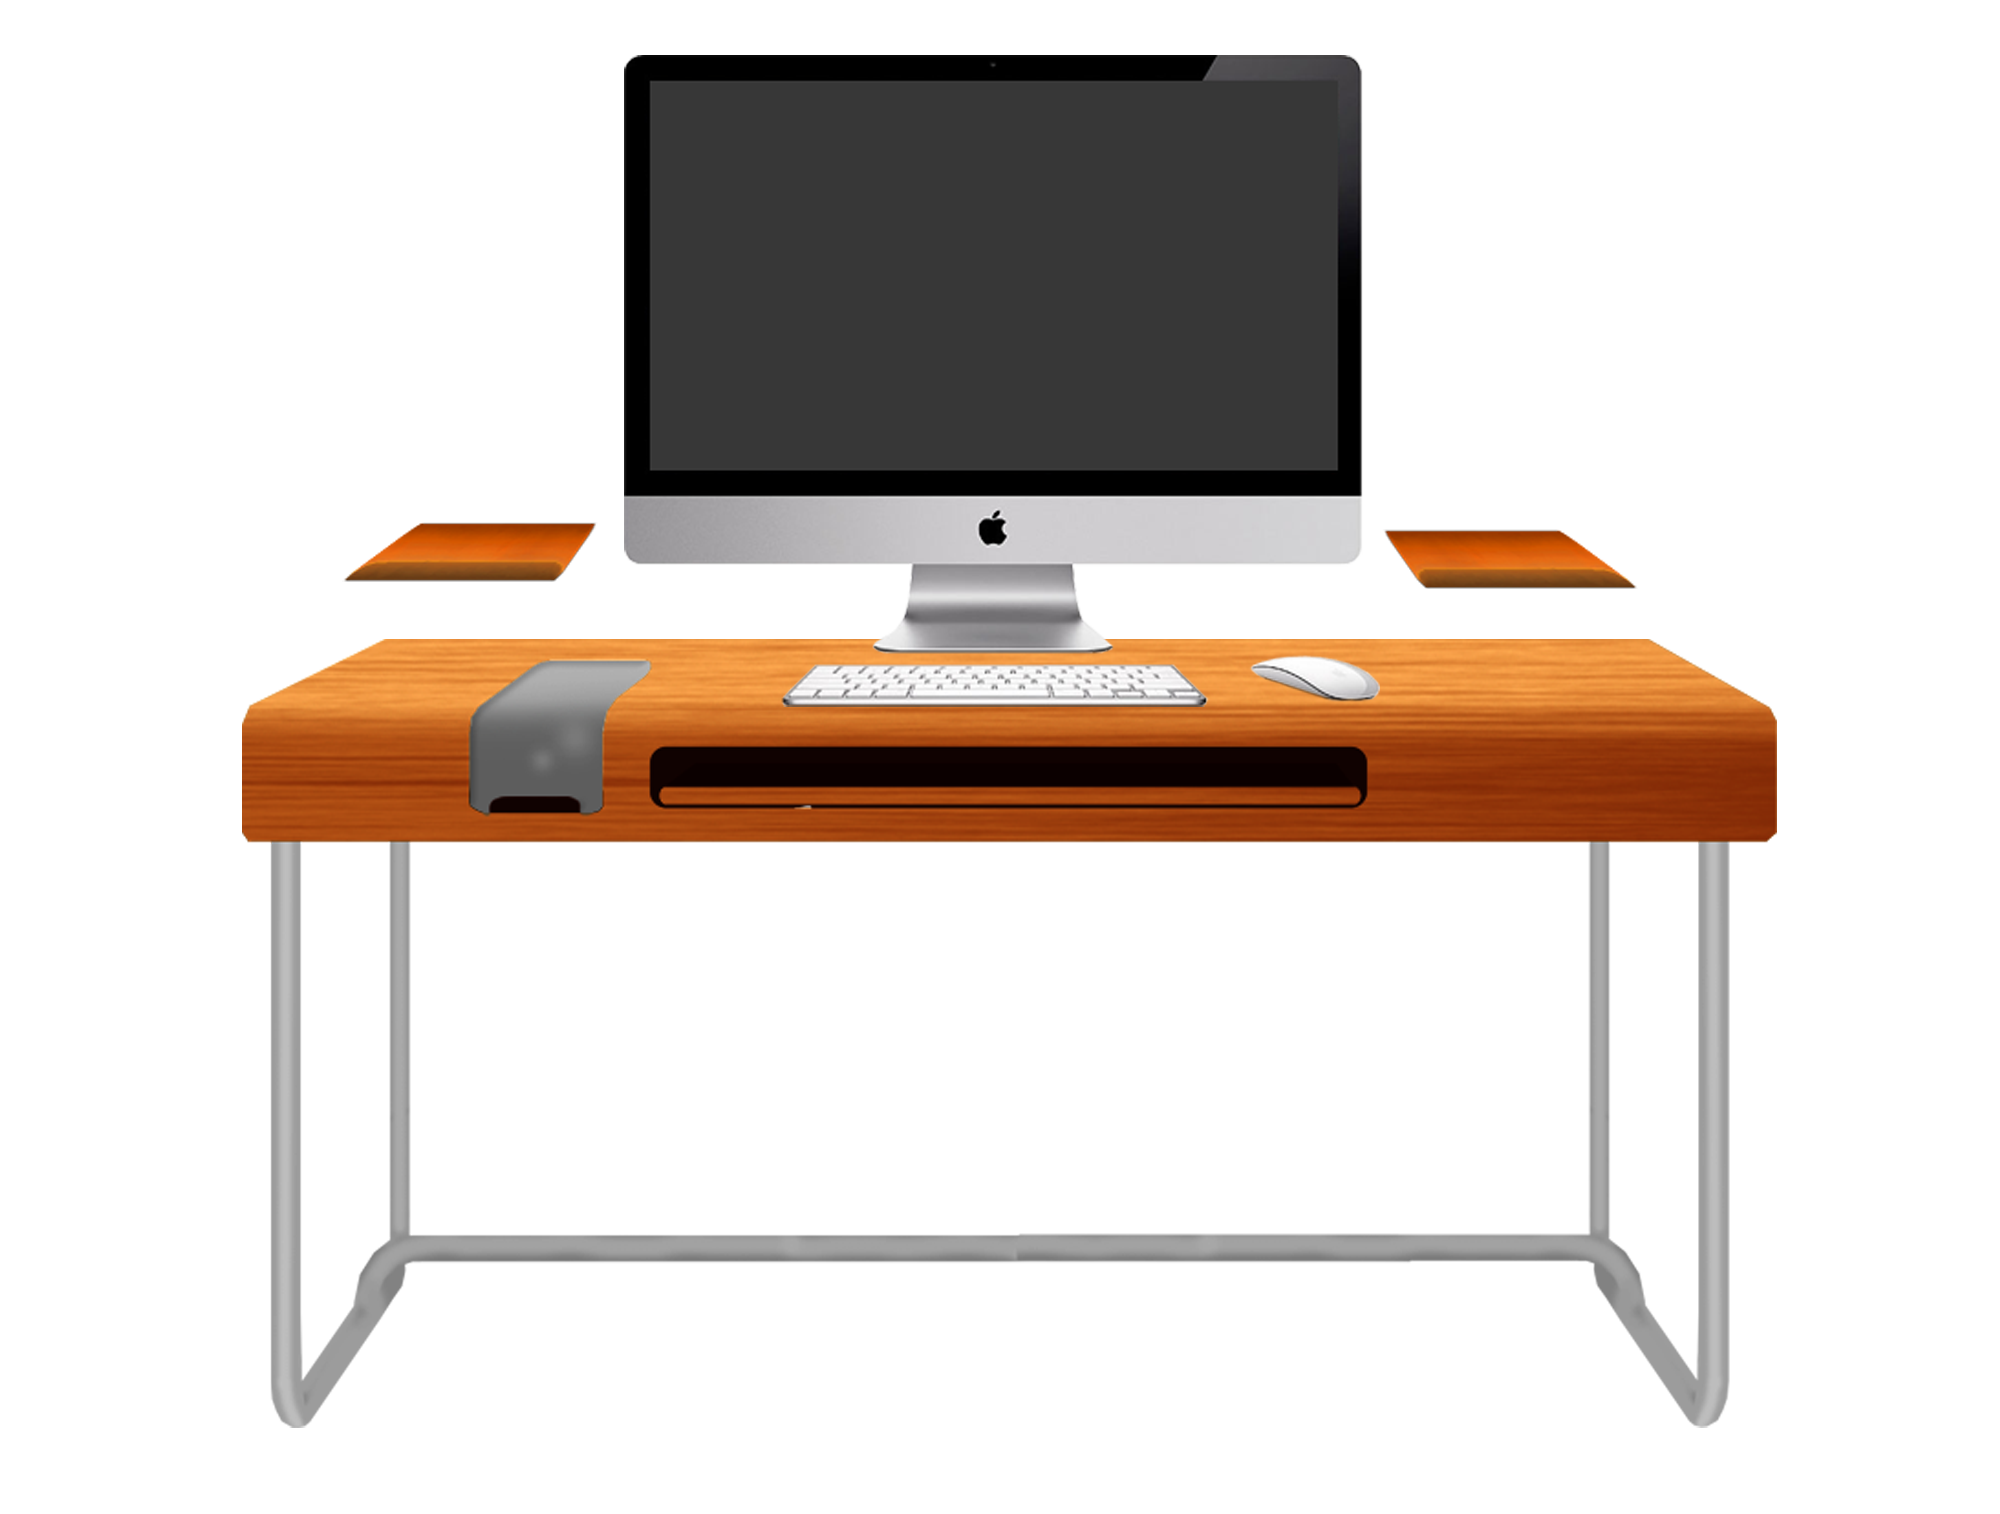 modern orange computer desk design with black keyboard and white down also computer set office. Black Bedroom Furniture Sets. Home Design Ideas